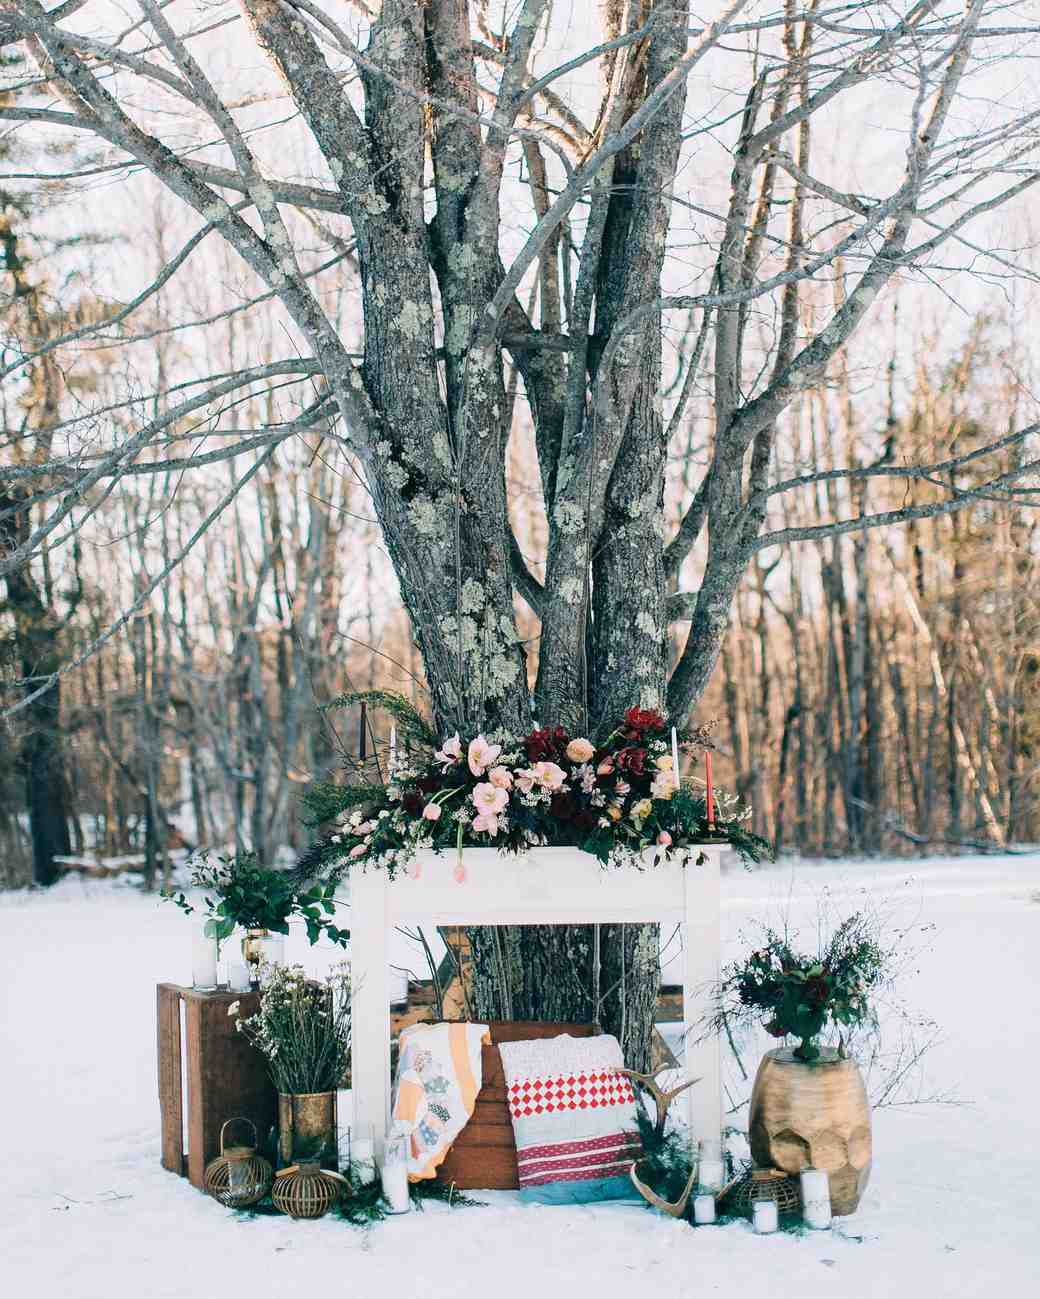 snowy winter display